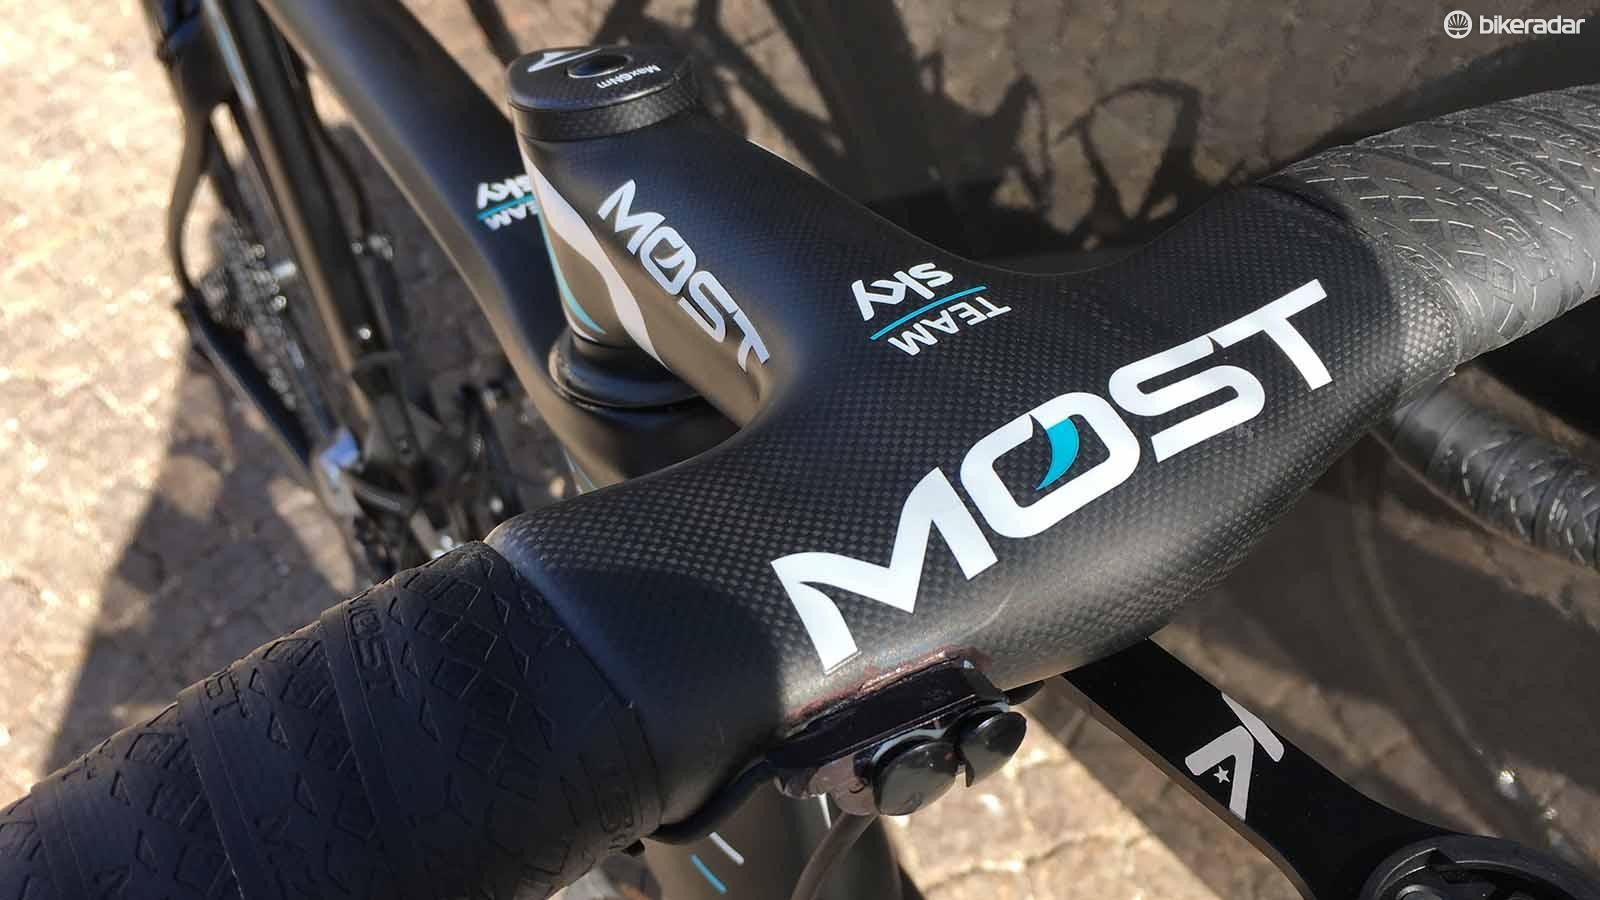 Pinarello's sister brand Most provides Team Sky with its cockpit components for the 2018 season